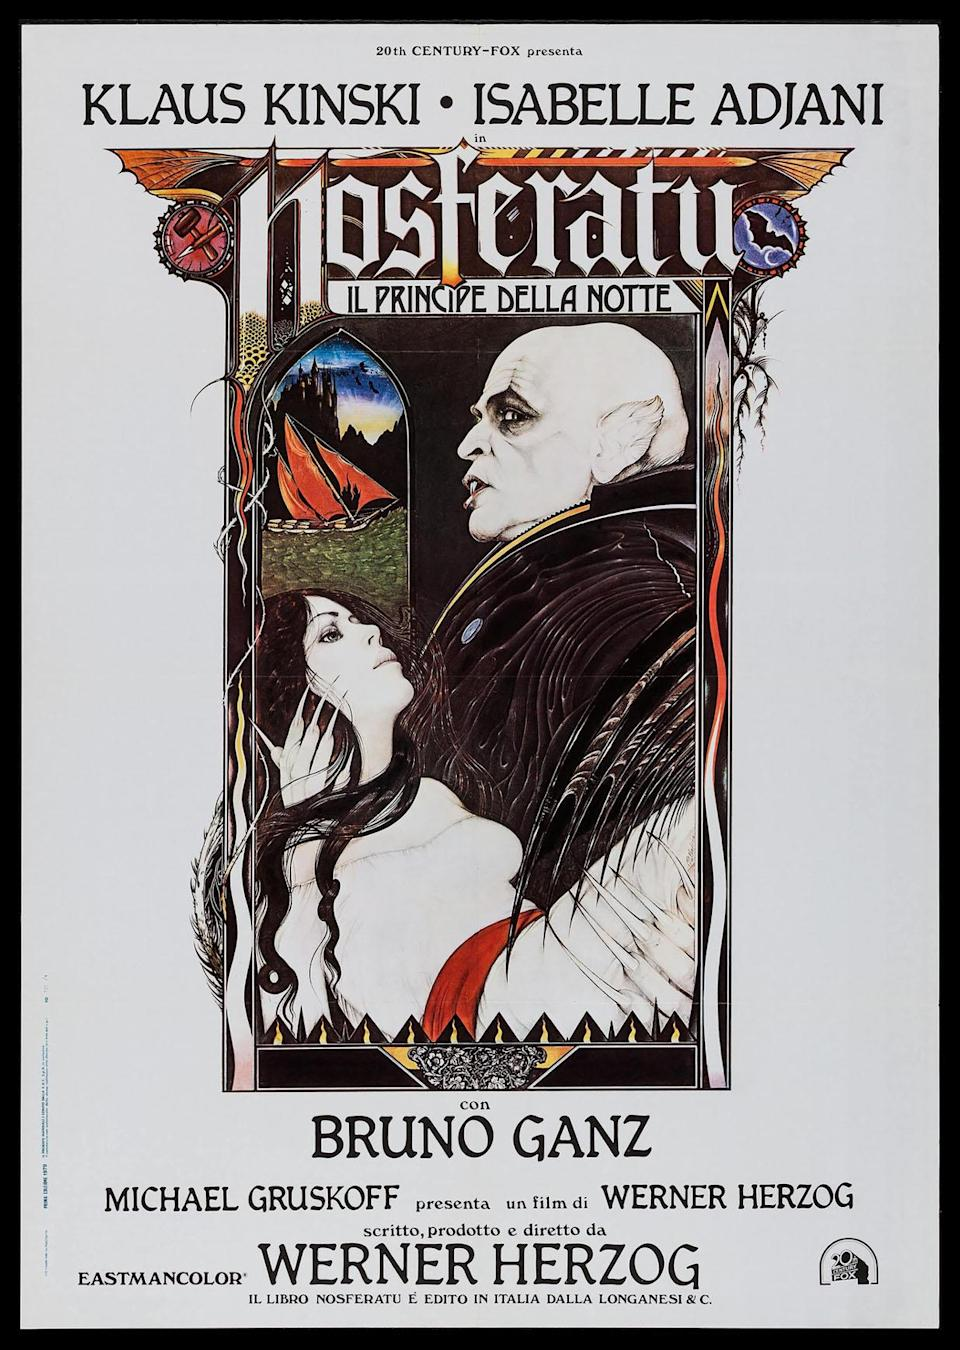 The poster for Nosferatu the Vampyre shows an illustration of the titular monster holding Isabelle Adjani as Lucy Harker